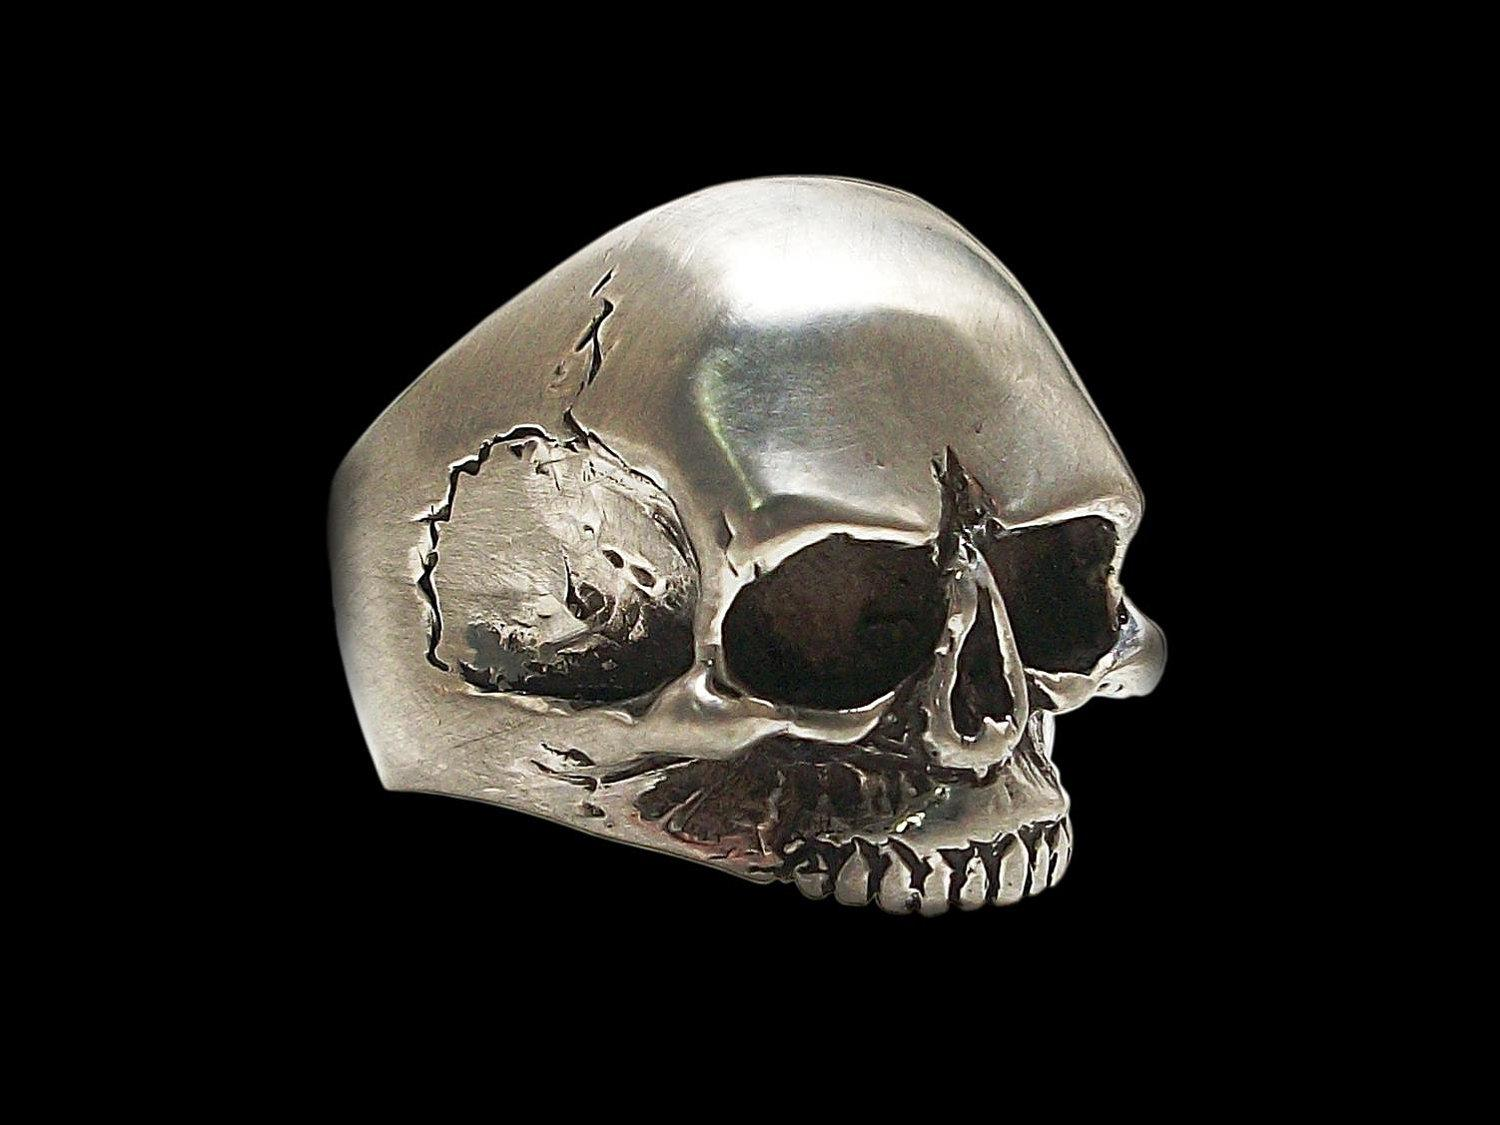 925 Solid Sterling Silver Keith Richards Skull Ring by Silveralexa